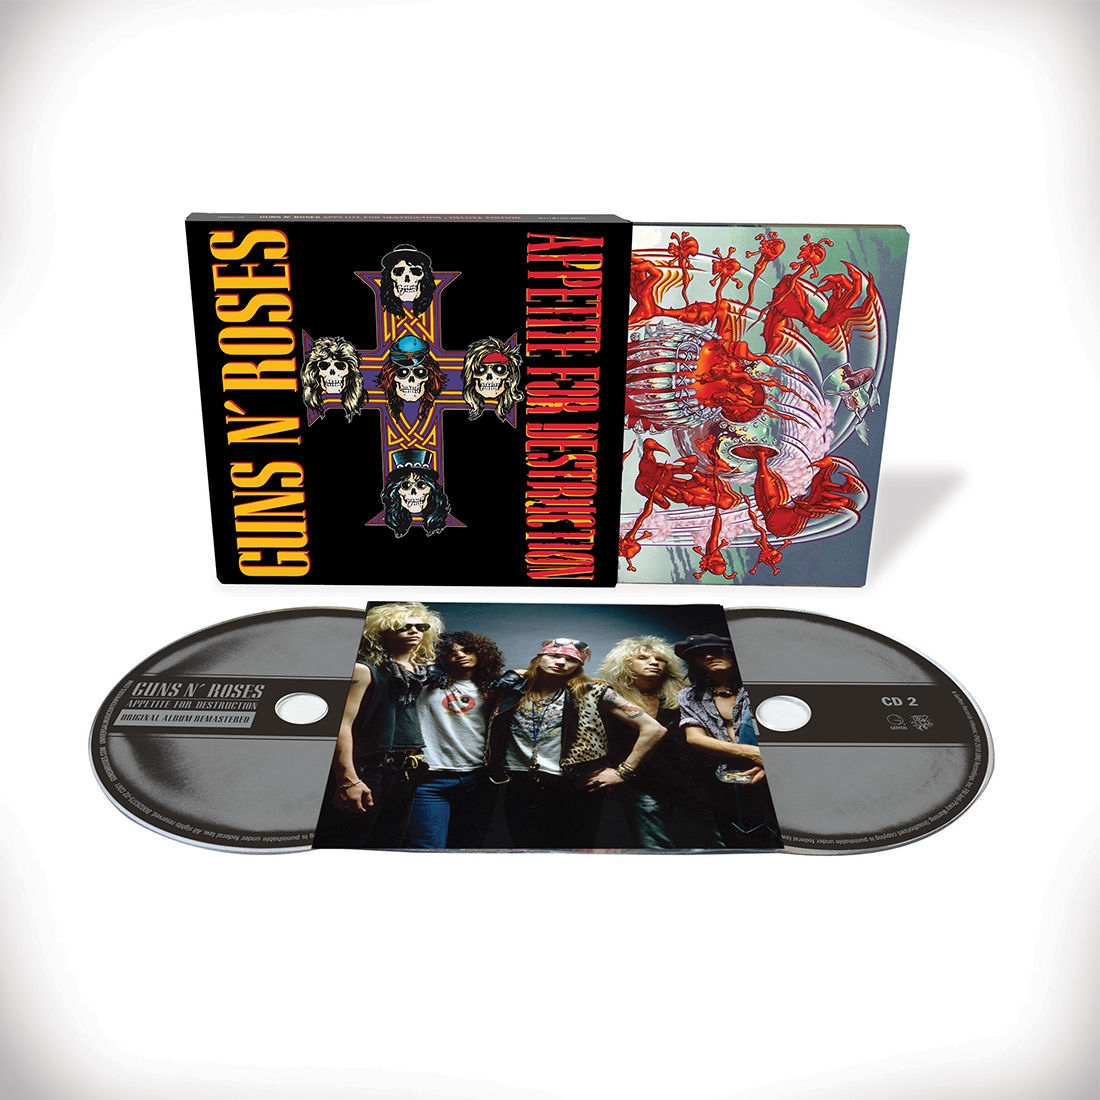 2CD deluxe appetite for destruction